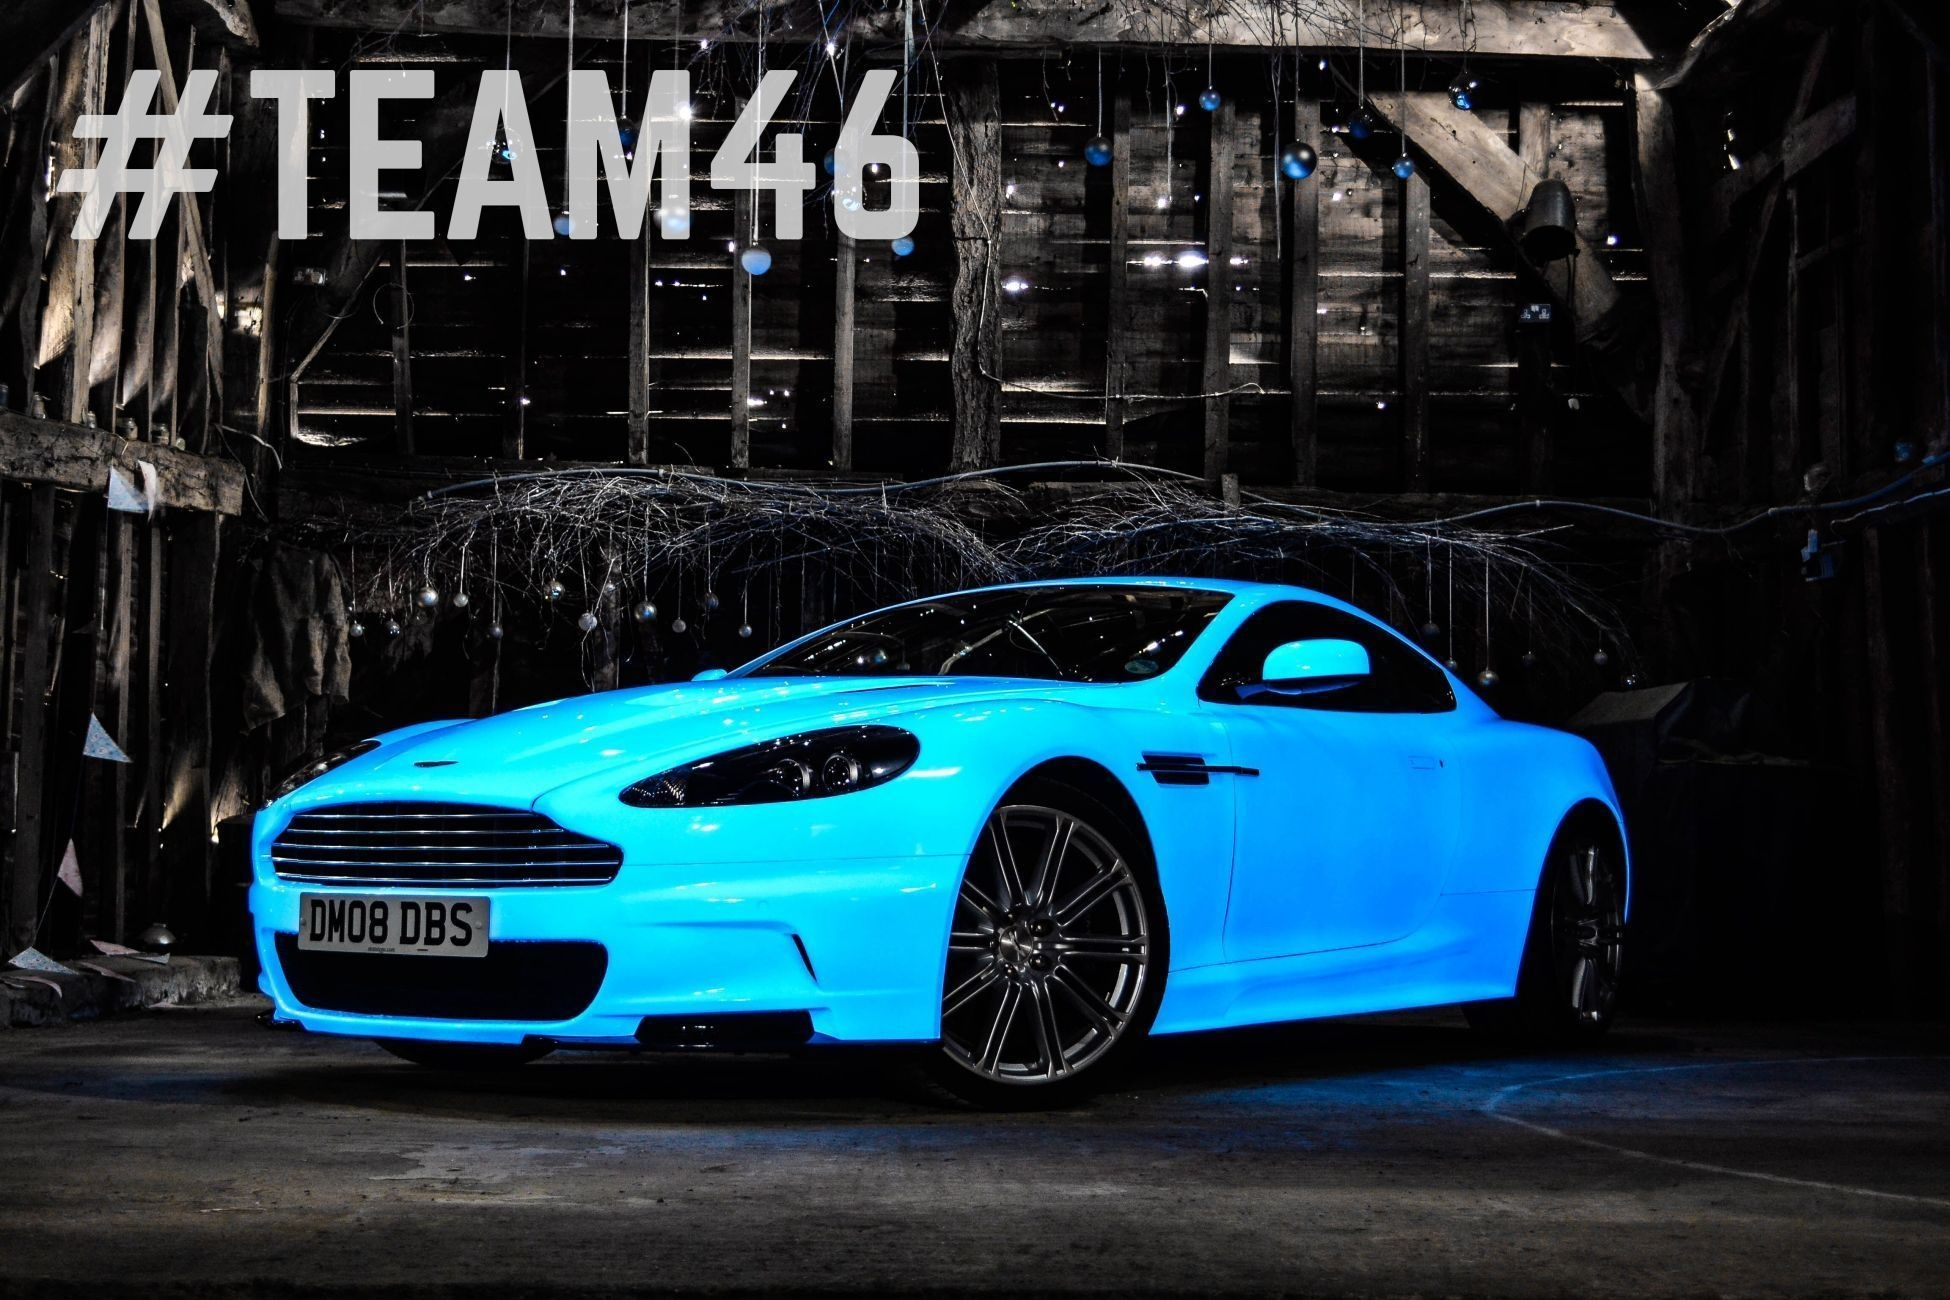 gumball 3000 aston martin sports new glow in the dark paint. Black Bedroom Furniture Sets. Home Design Ideas